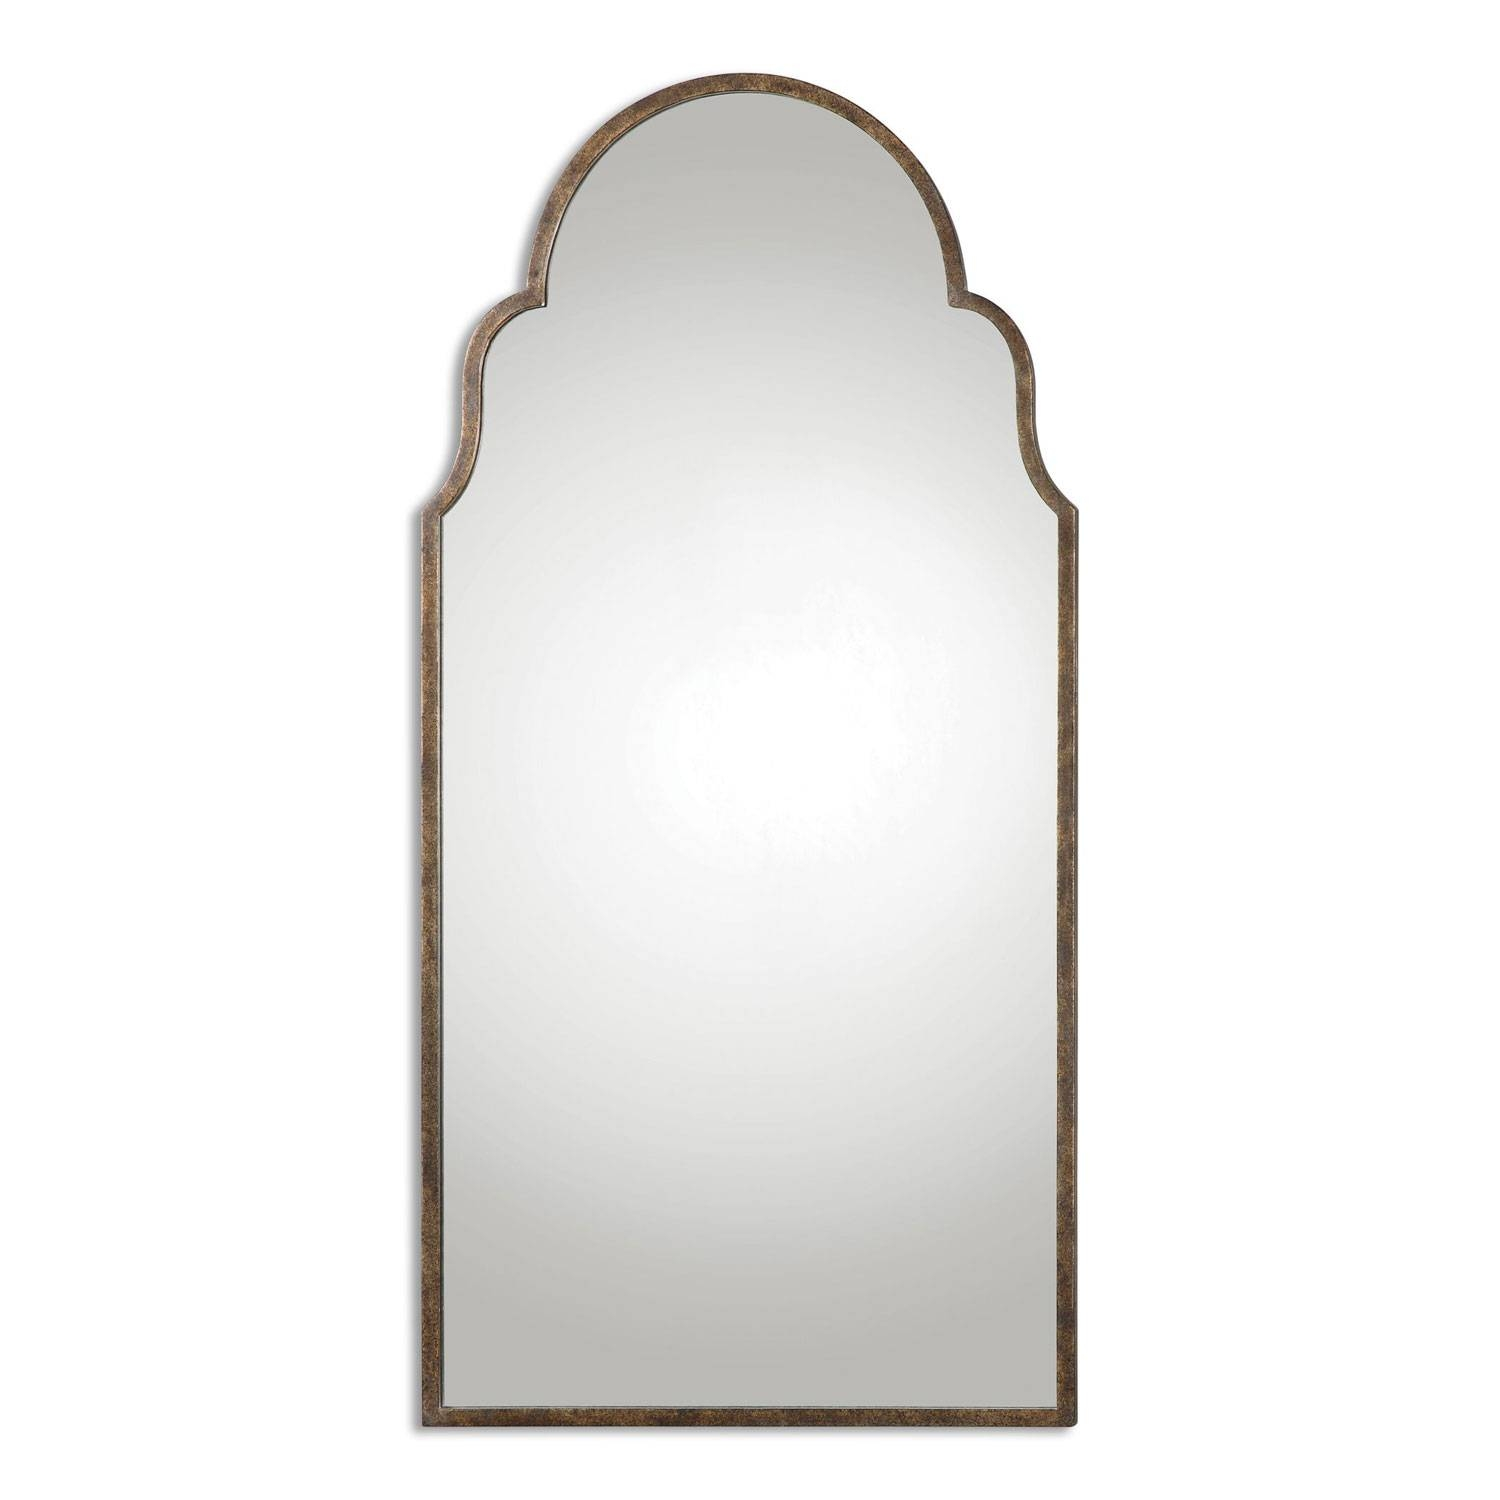 Arched Crowned Mirrors | Bellacor within Antique Arched Mirrors (Image 10 of 25)